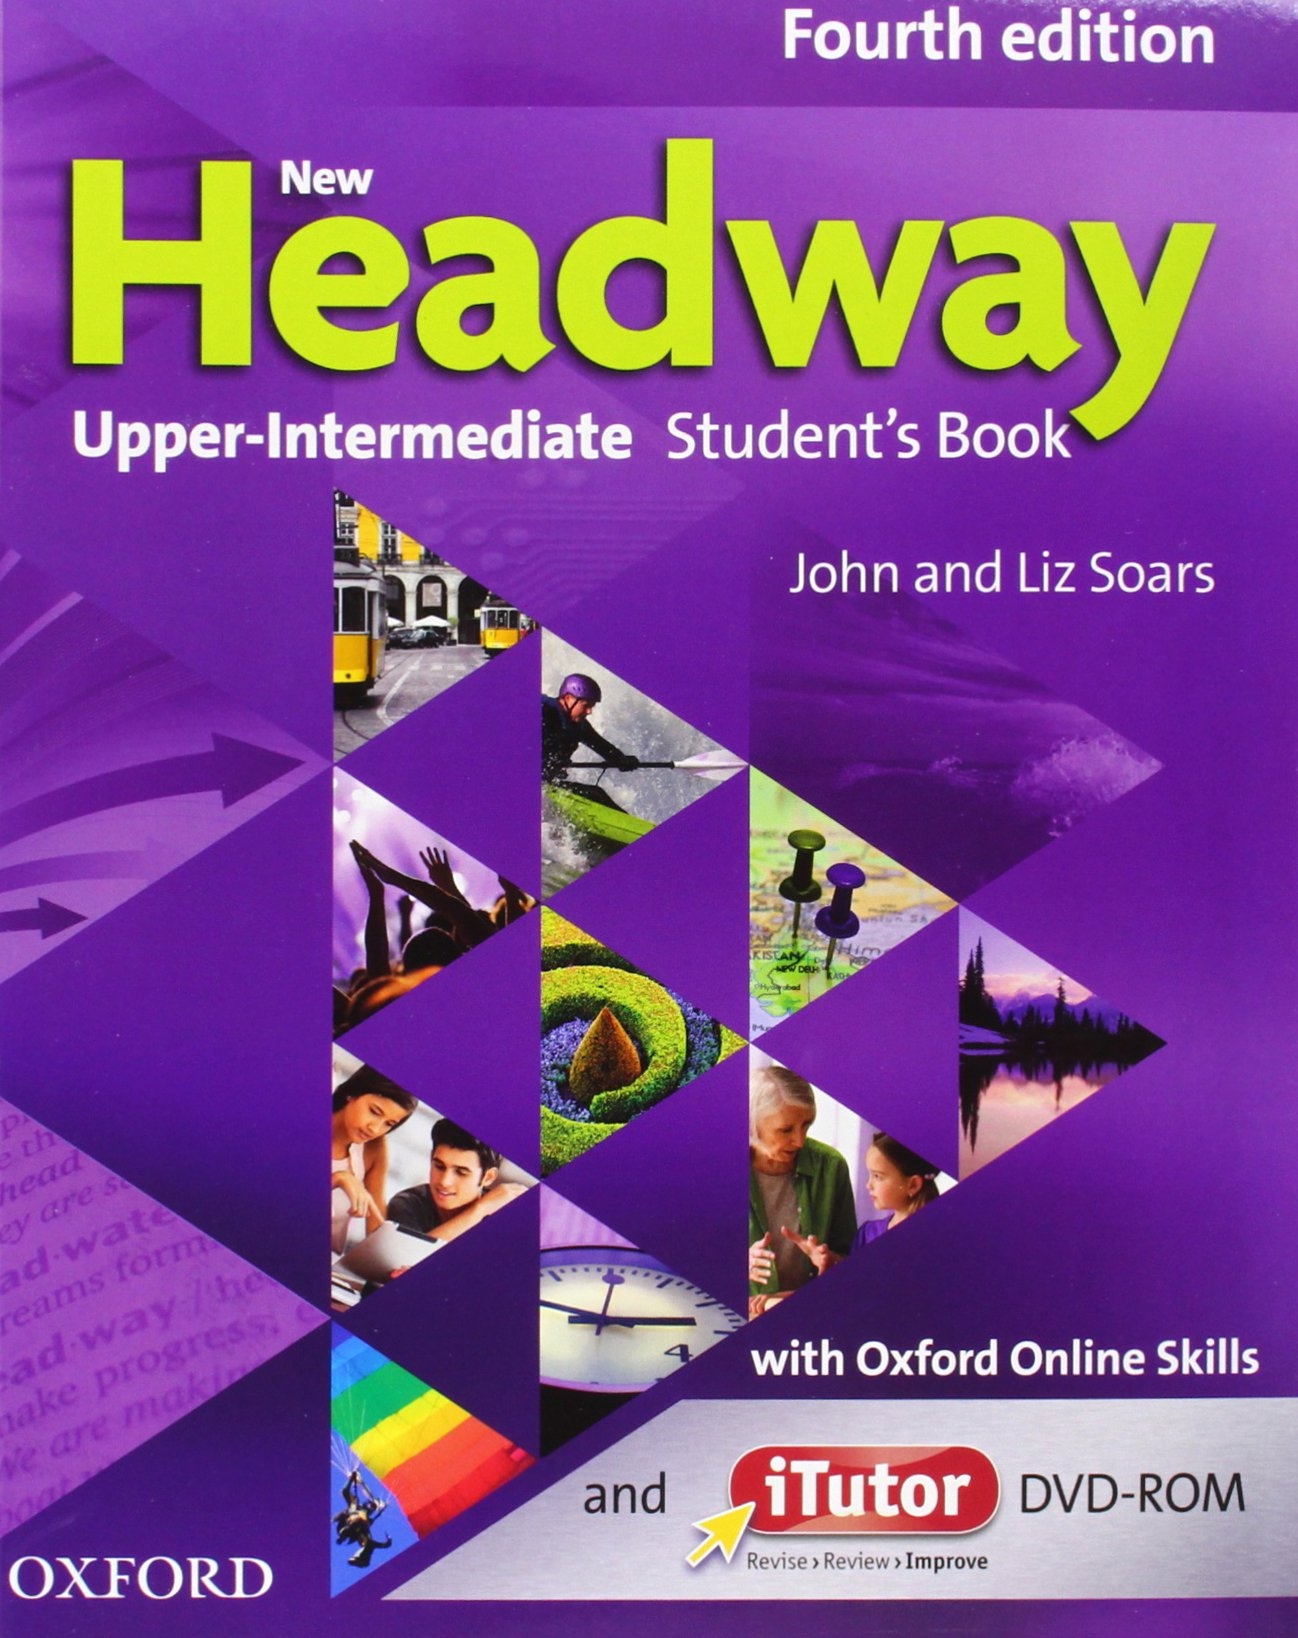 NEW HEADWAY UPPER-INTERMEDIATE 4th ED Student's Book + iTutor and Online Skills Pack